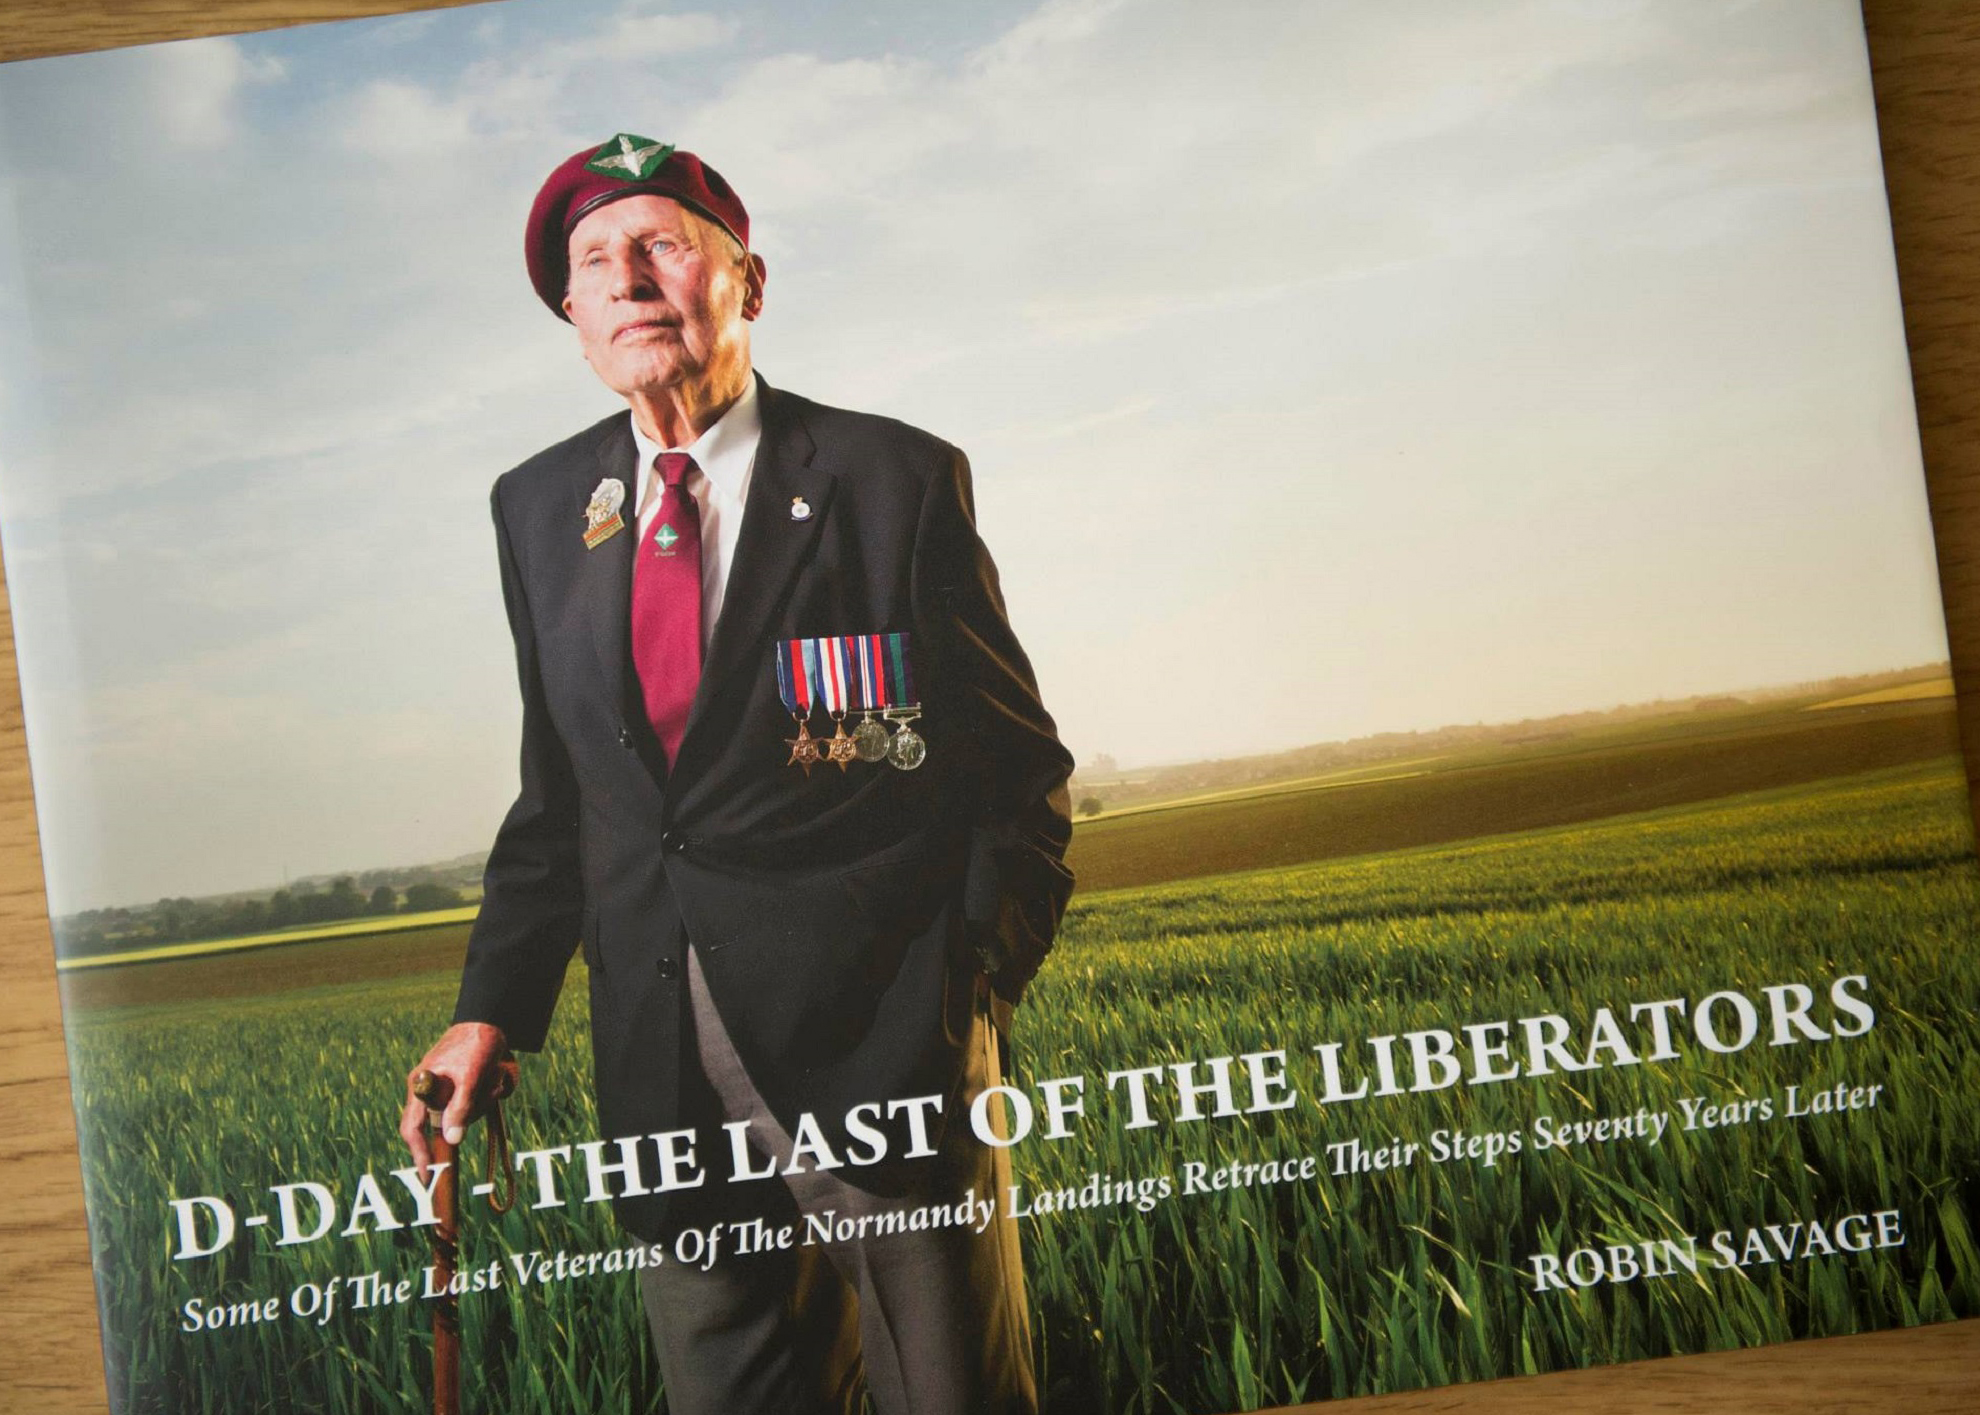 Robin Savage, d-day, the last of the liberators, book review, photography book